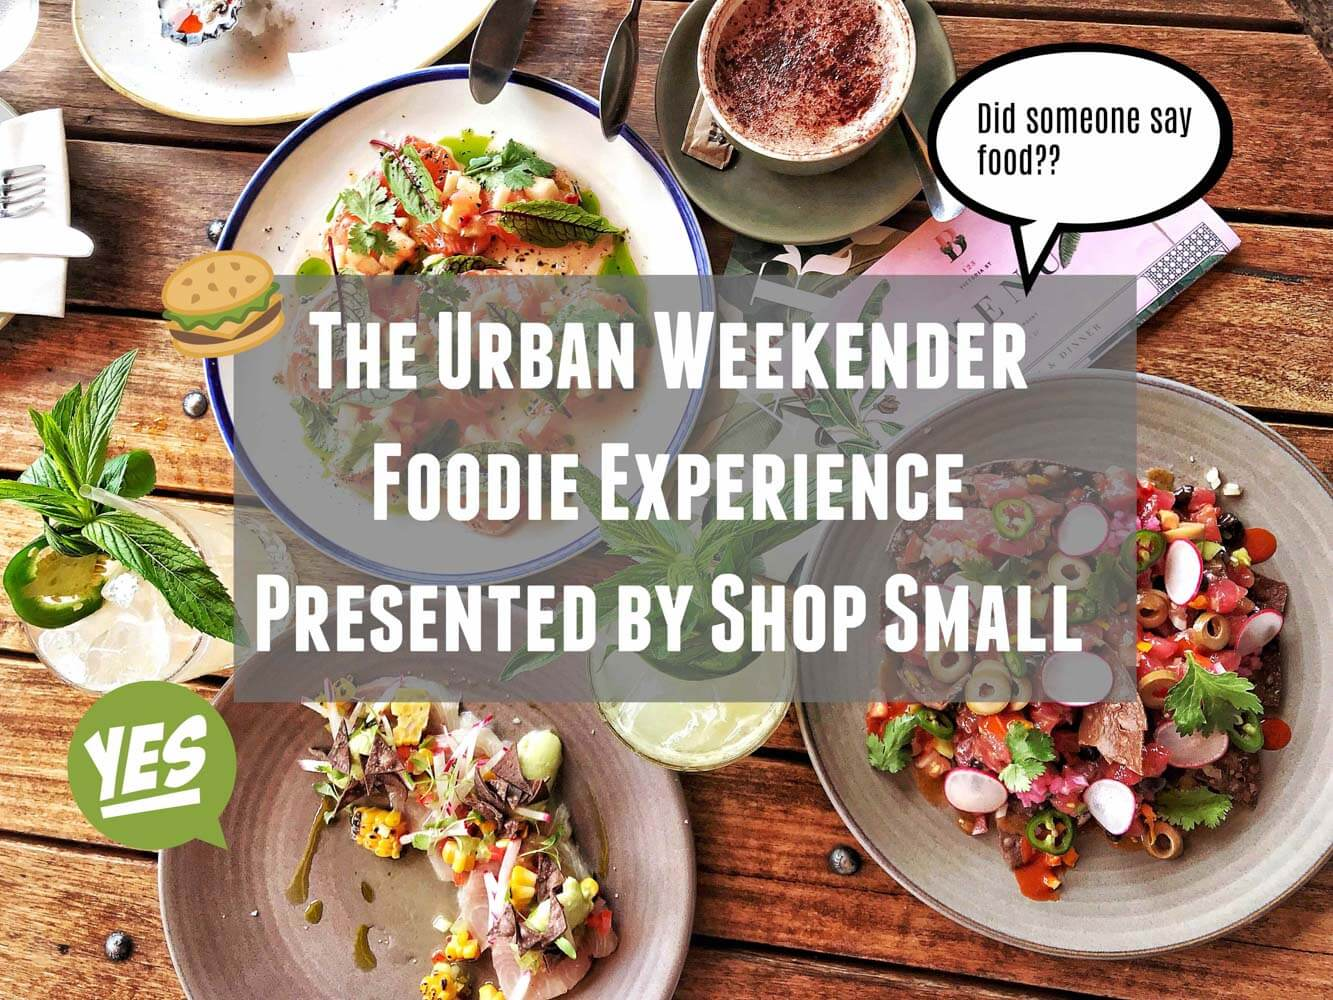 Urban Weekender, Shop Small, American Express